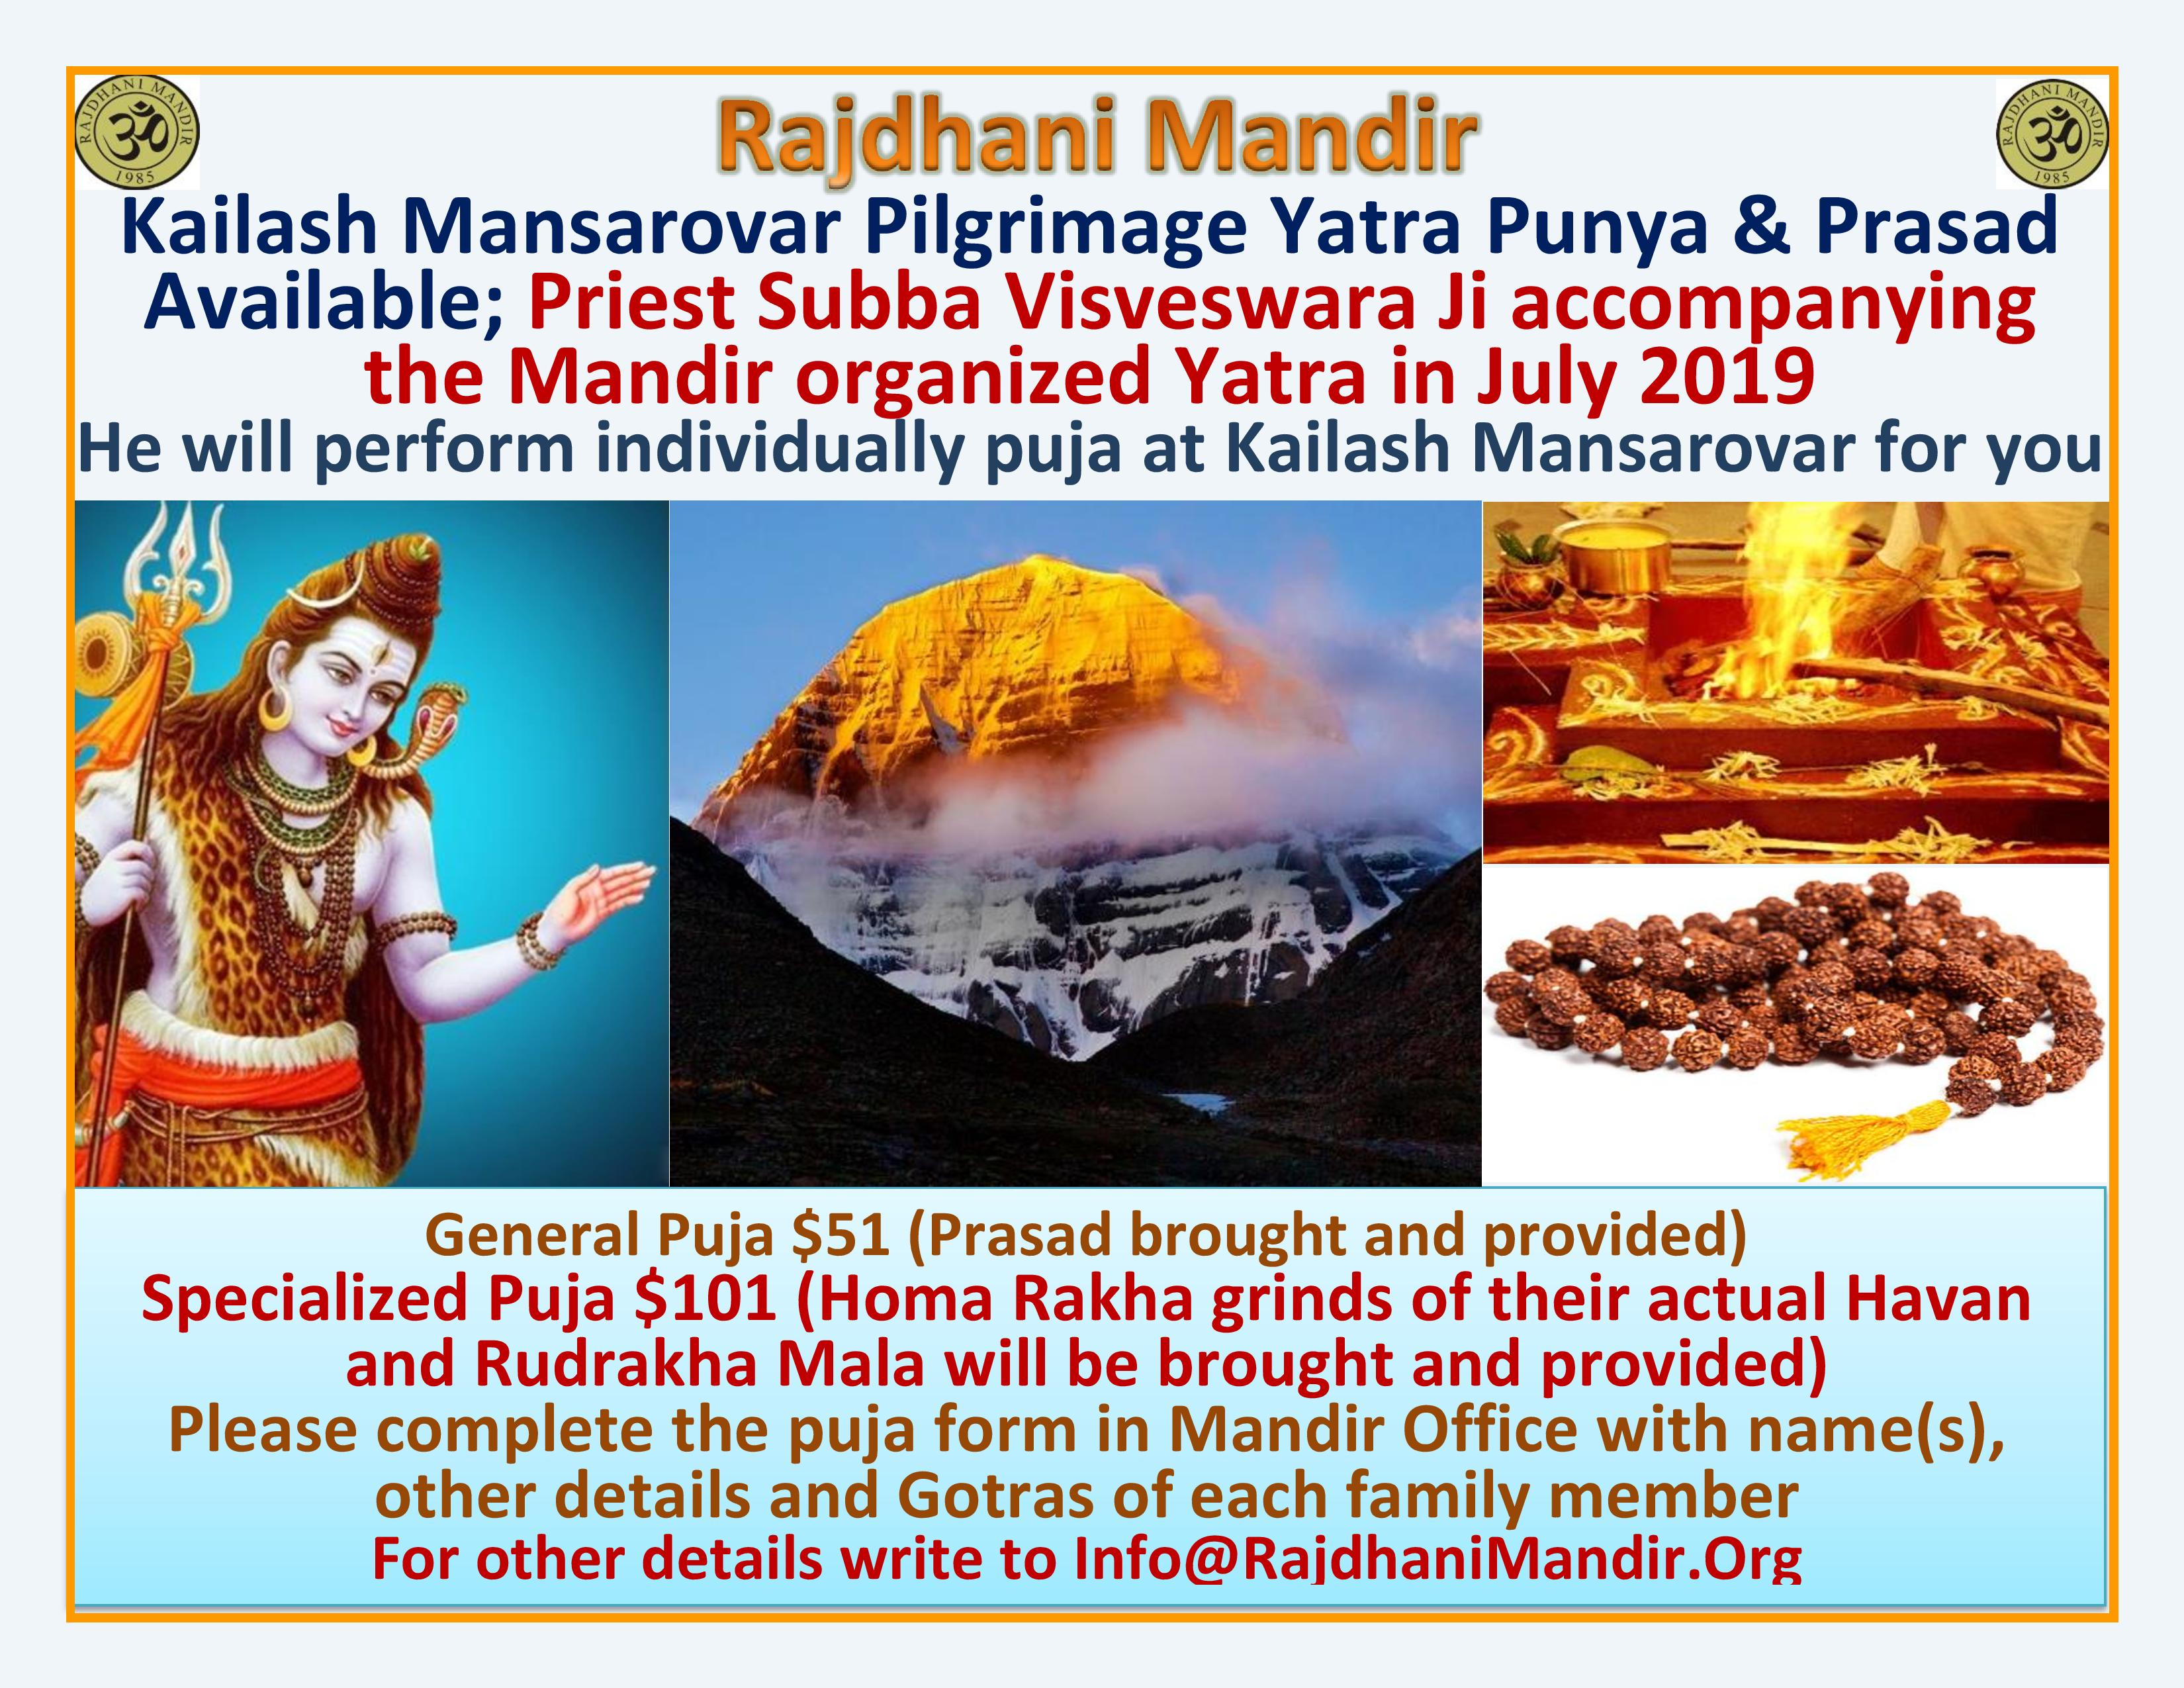 Puja/Havan at Kailash Mansarovar for you and family